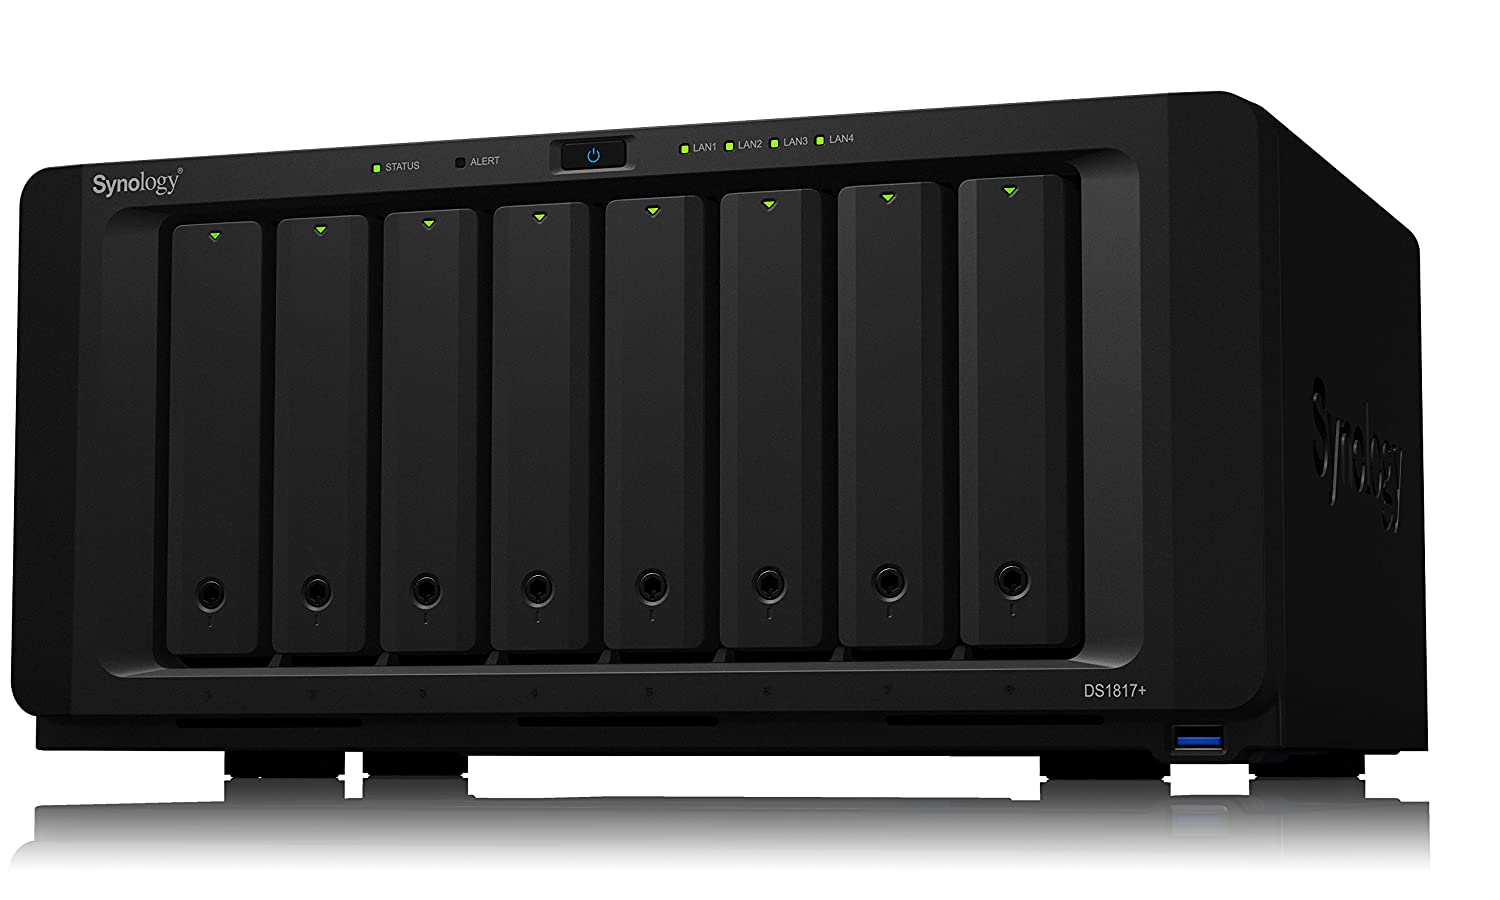 TALLA Enclosure. Synology Serie Plus DS1817+ NAS Escritorio Ethernet - Unidad Raid (2 GB y 8 GB, SSD, M.2, SATA, 2.5/3.5